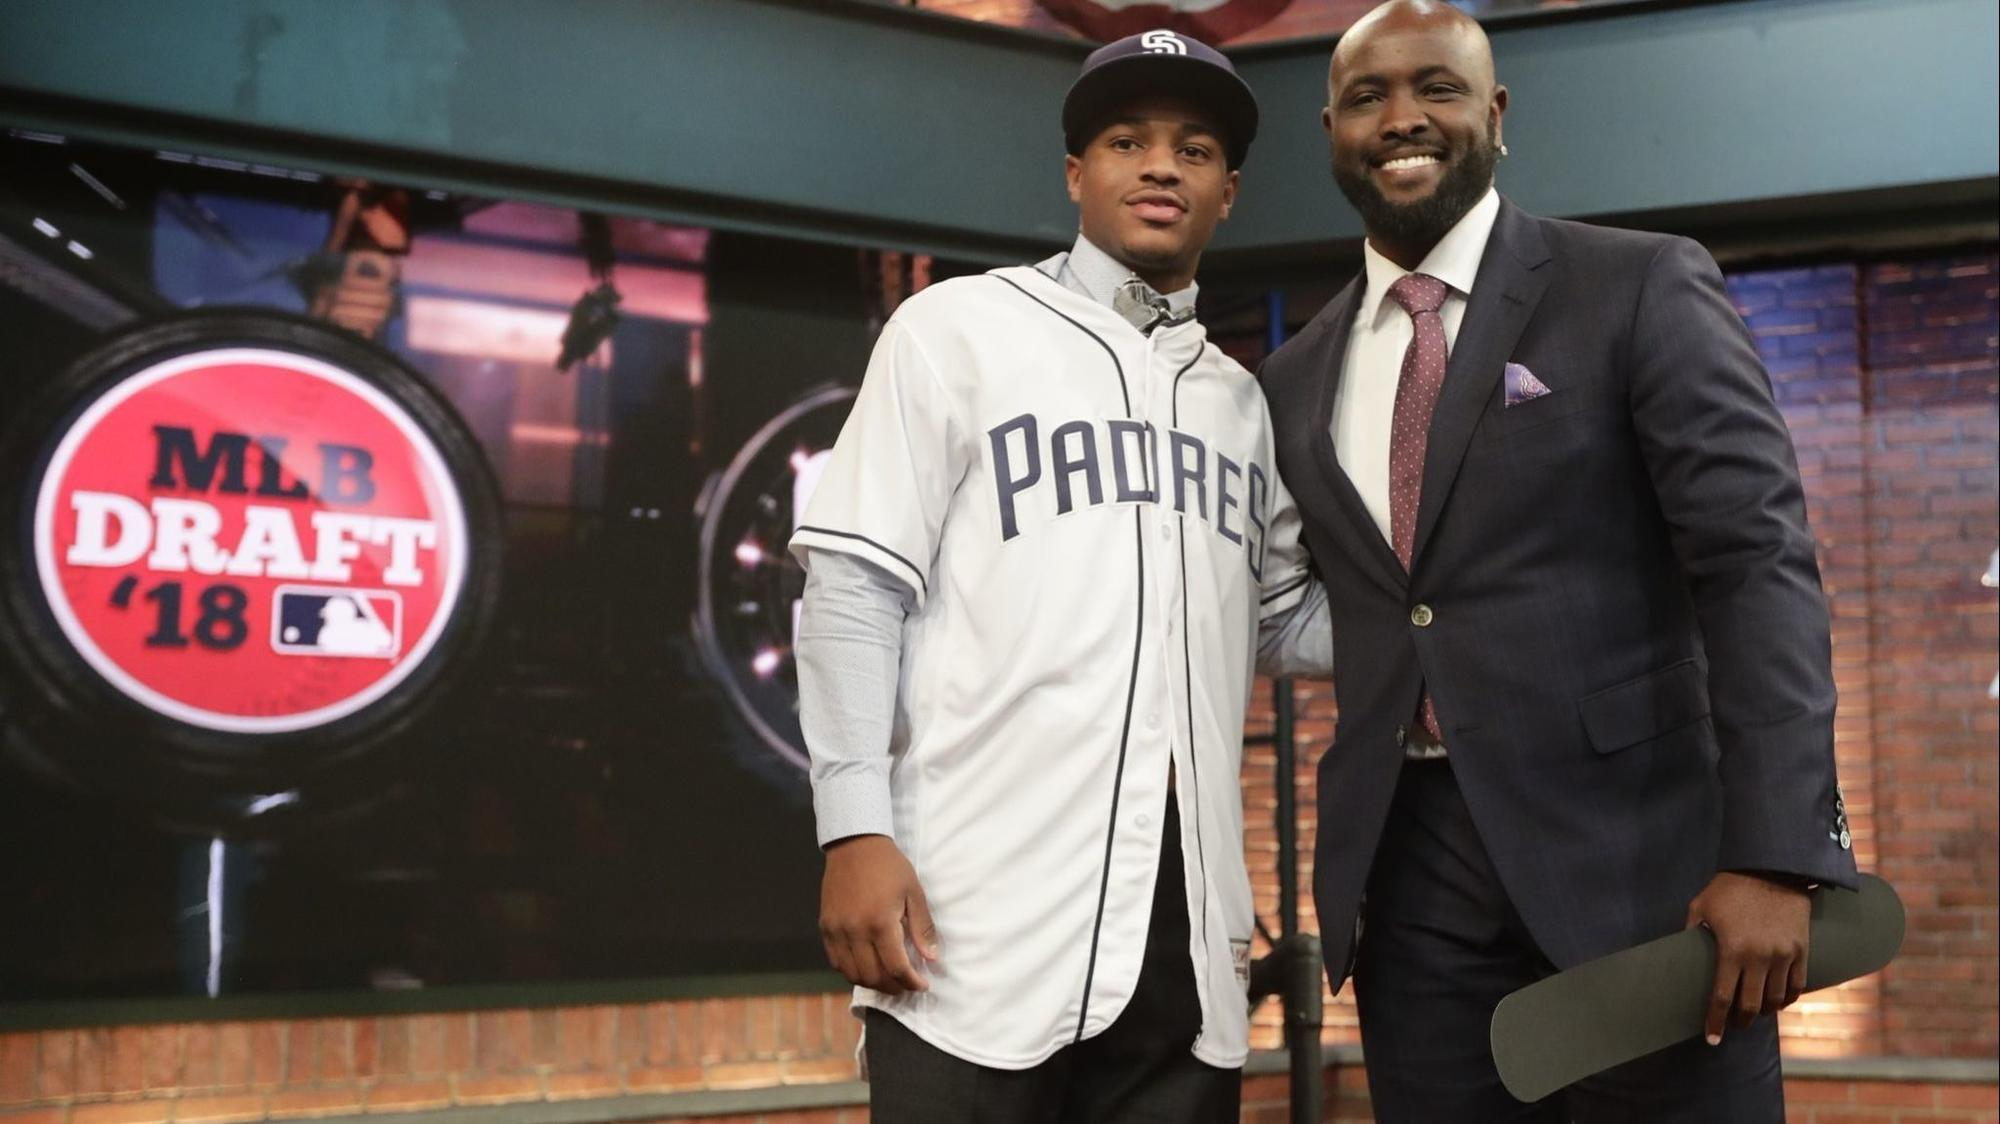 Sd-sp-padres-sign-xavier-edwards-20180613